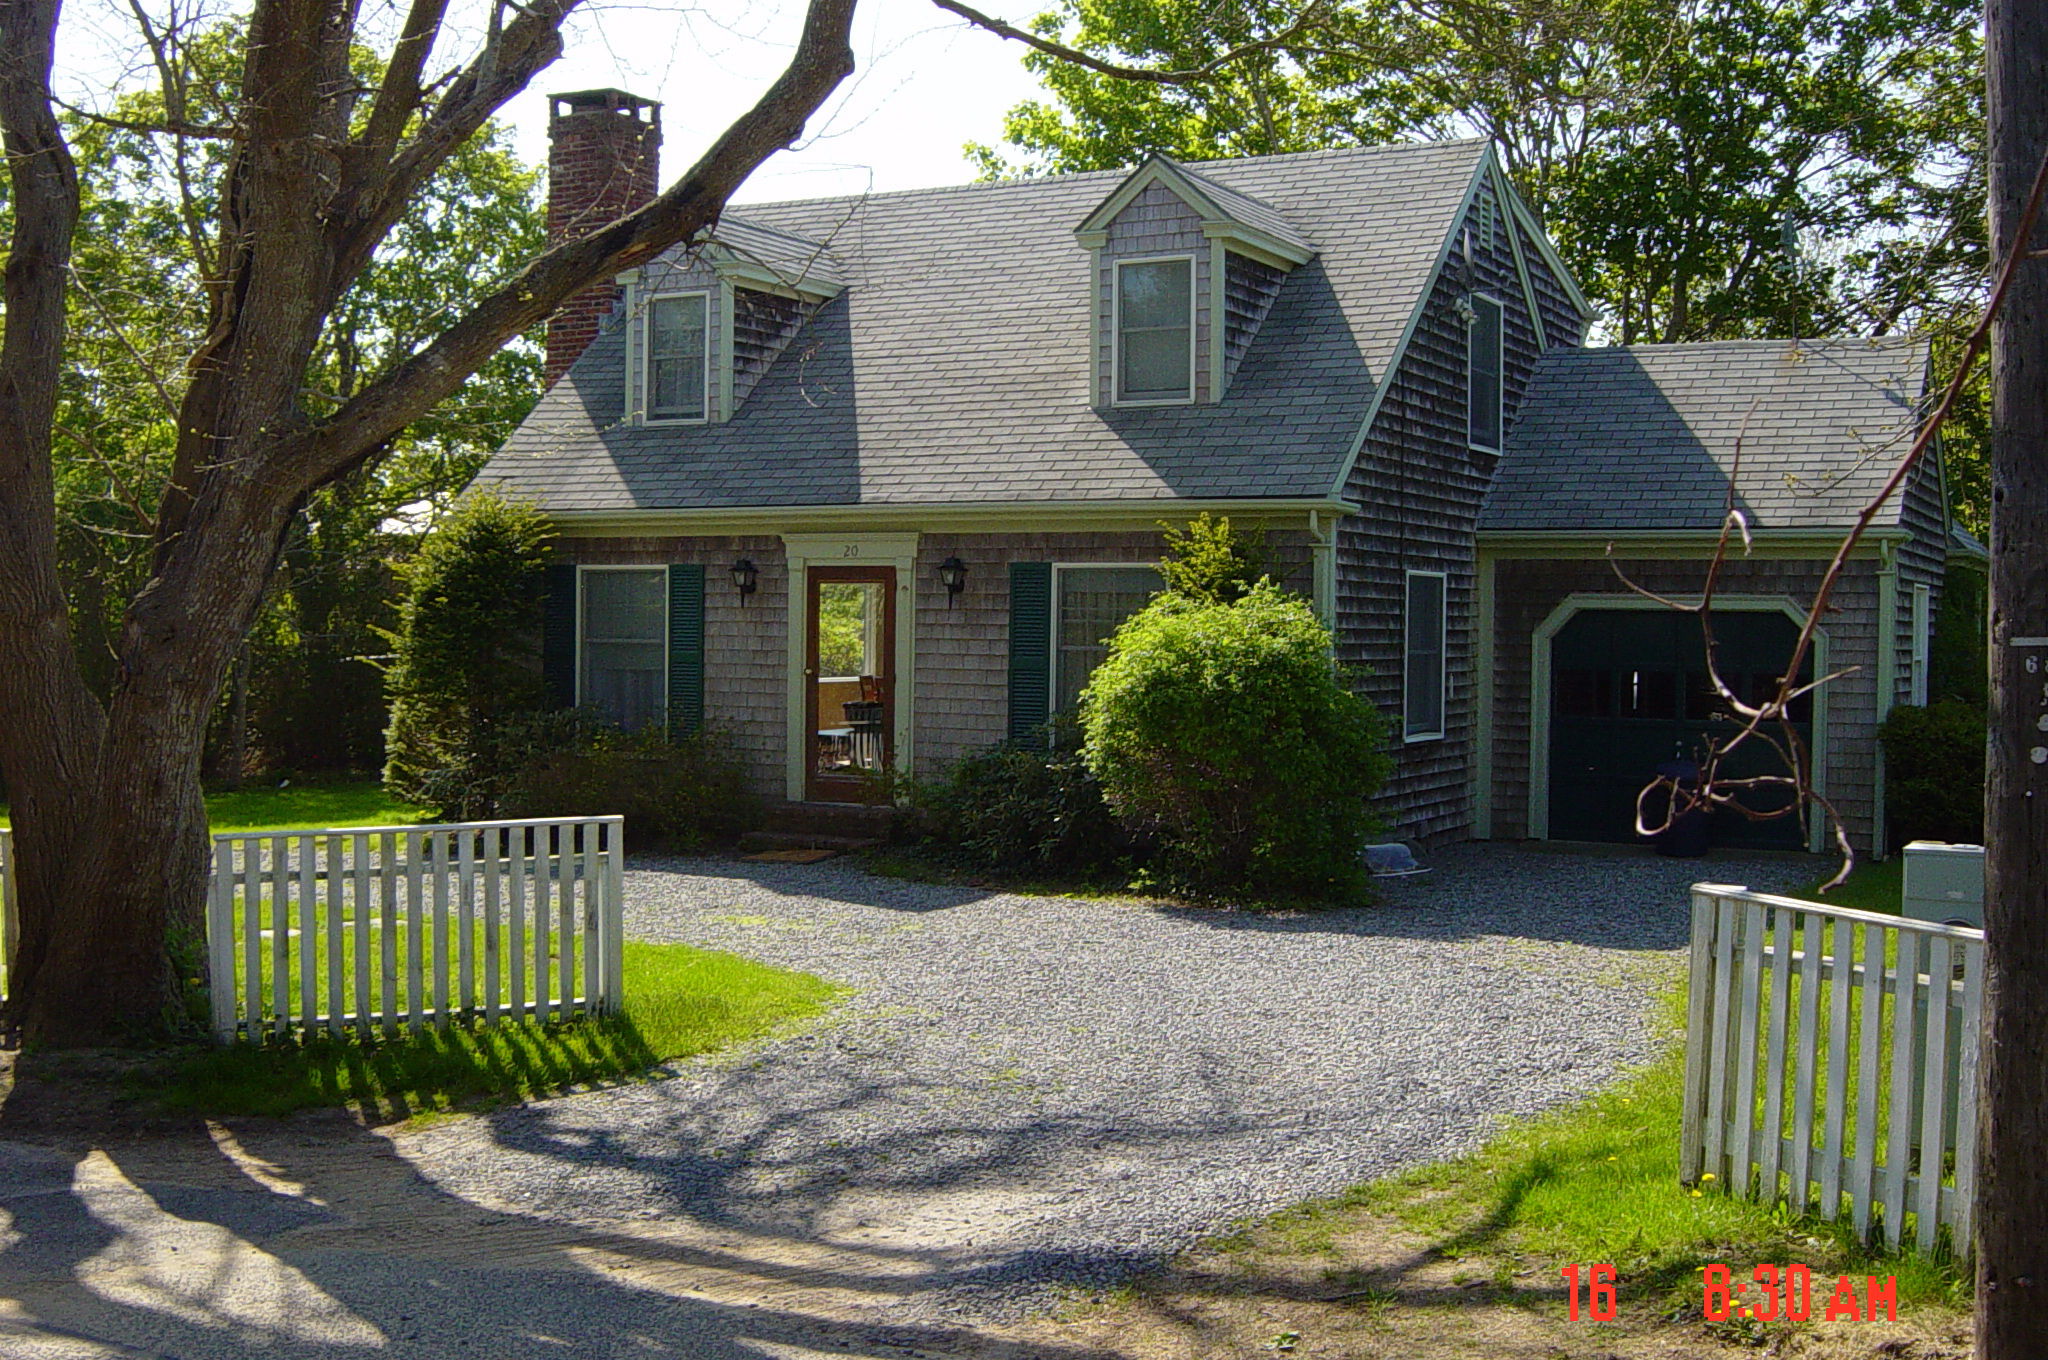 Maison unifamiliale pour l Vente à Charming 3 Bedroom Cape 20 Mullen Way Edgartown, Massachusetts 02539 États-Unis